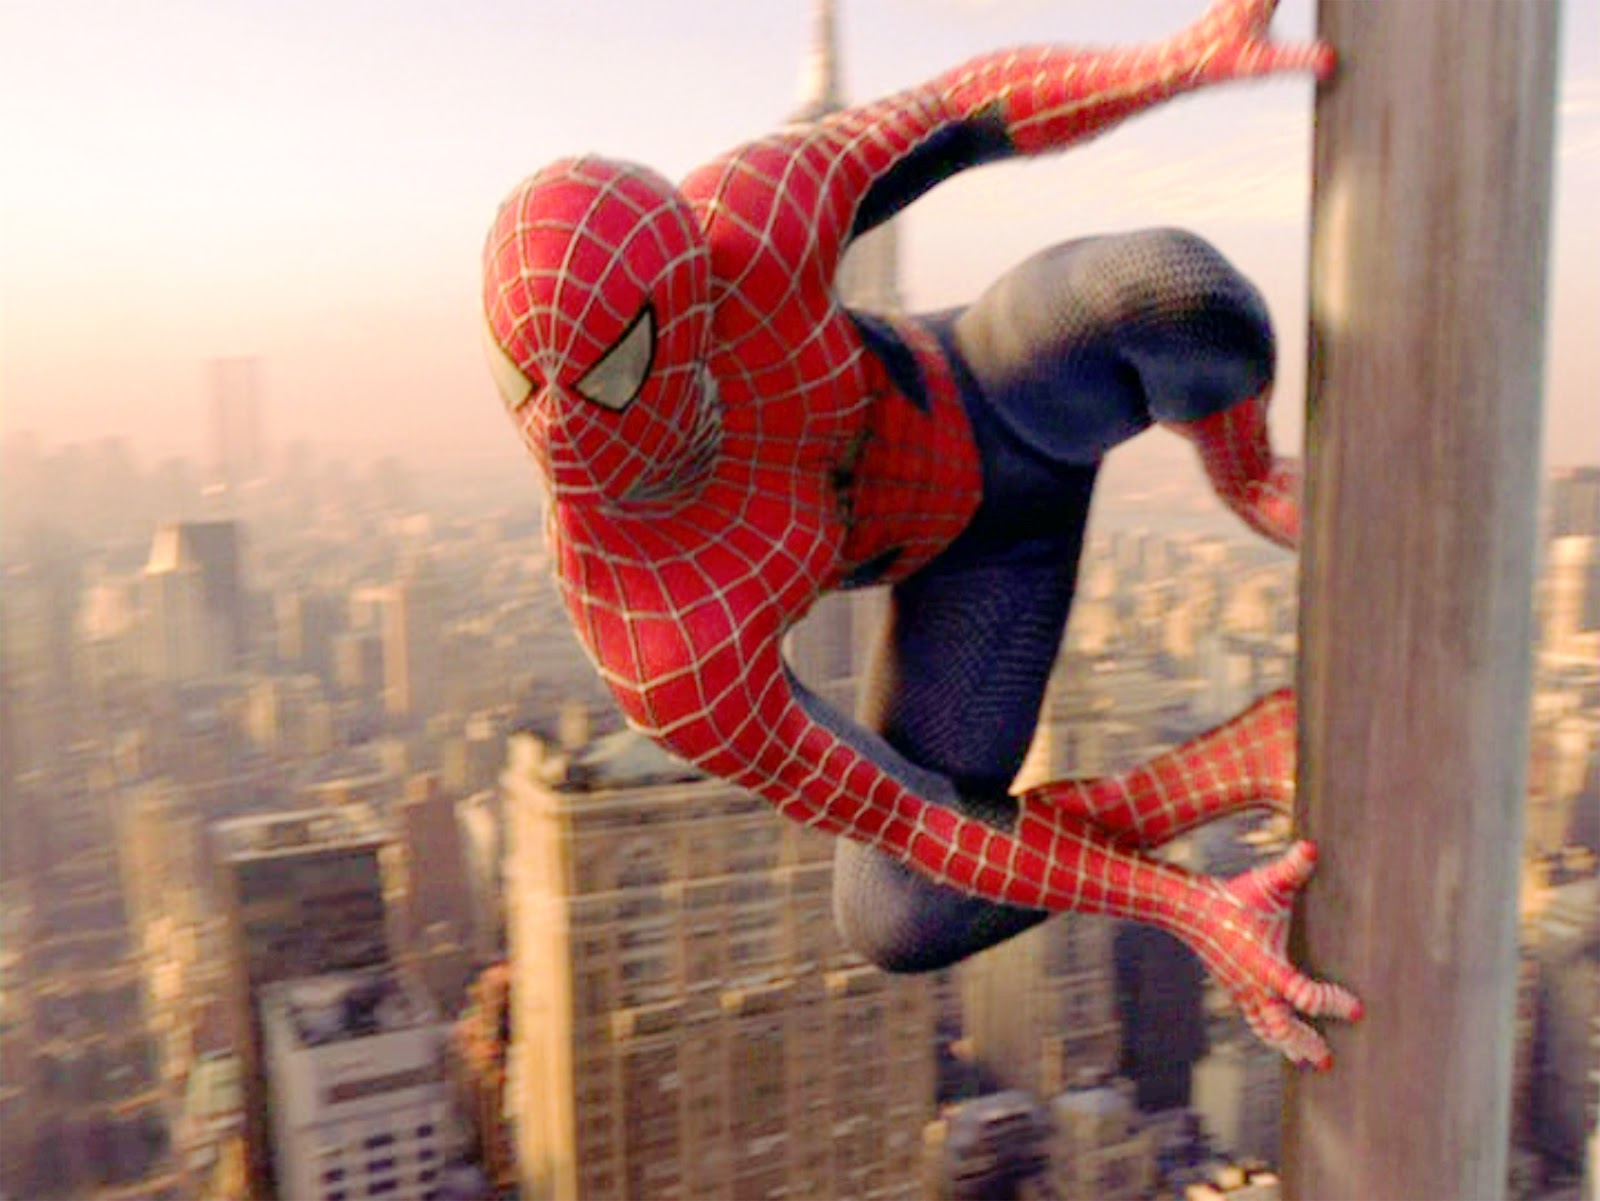 mendelson's memos: thoughts on sam raimi's spider-man, ten years